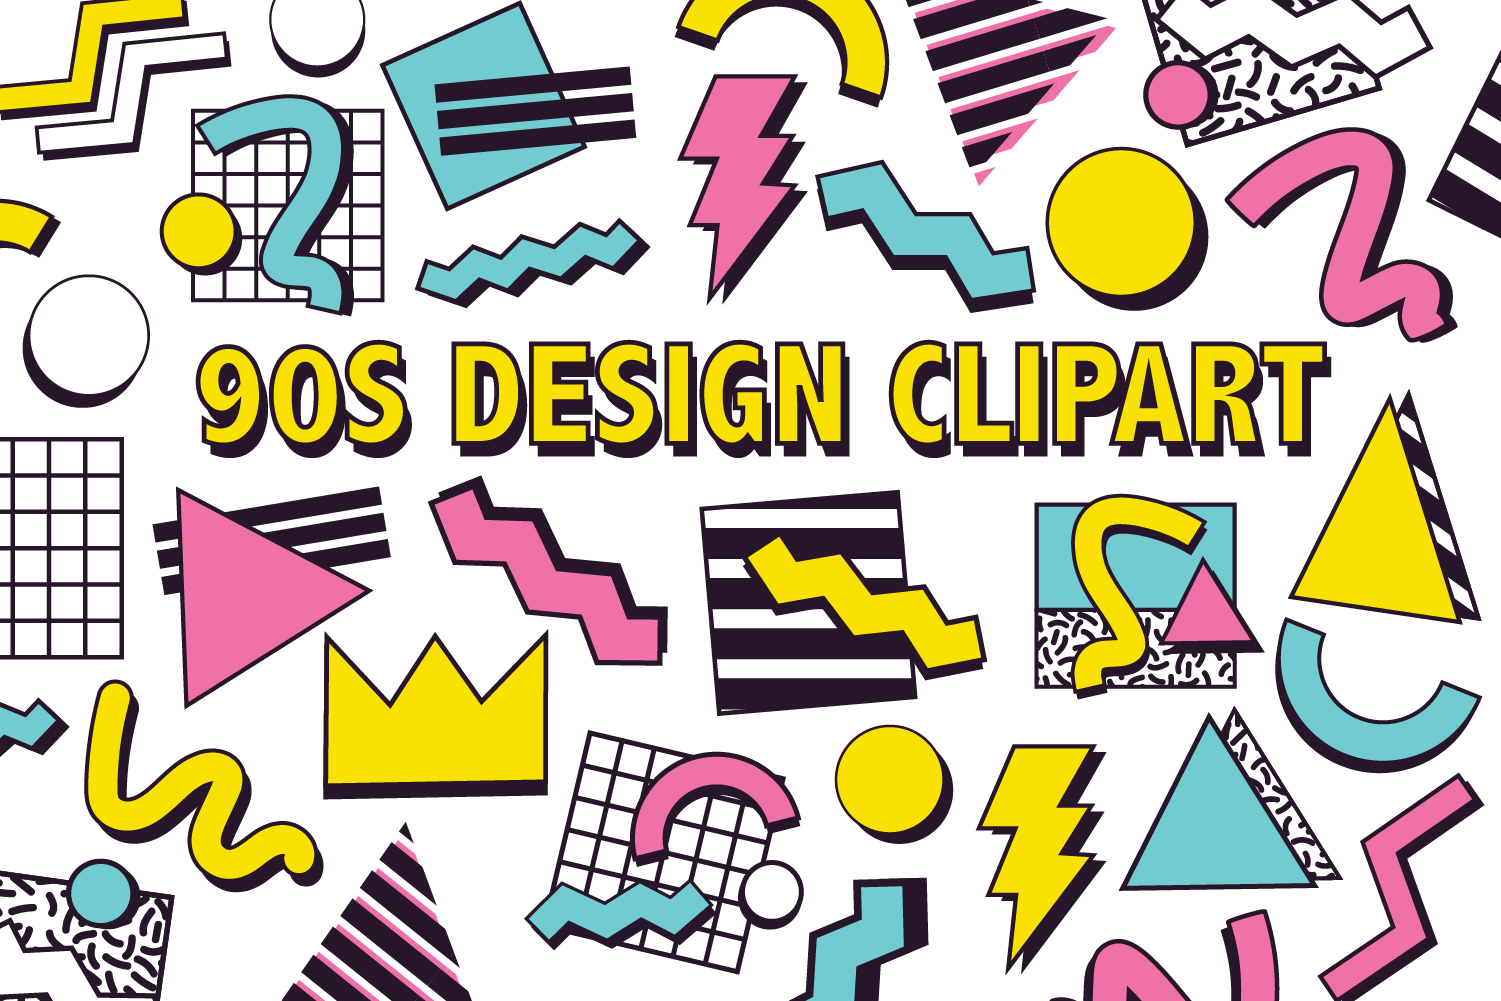 90s clipart graphic freeuse download 90s DESIGN CLIPART graphic freeuse download